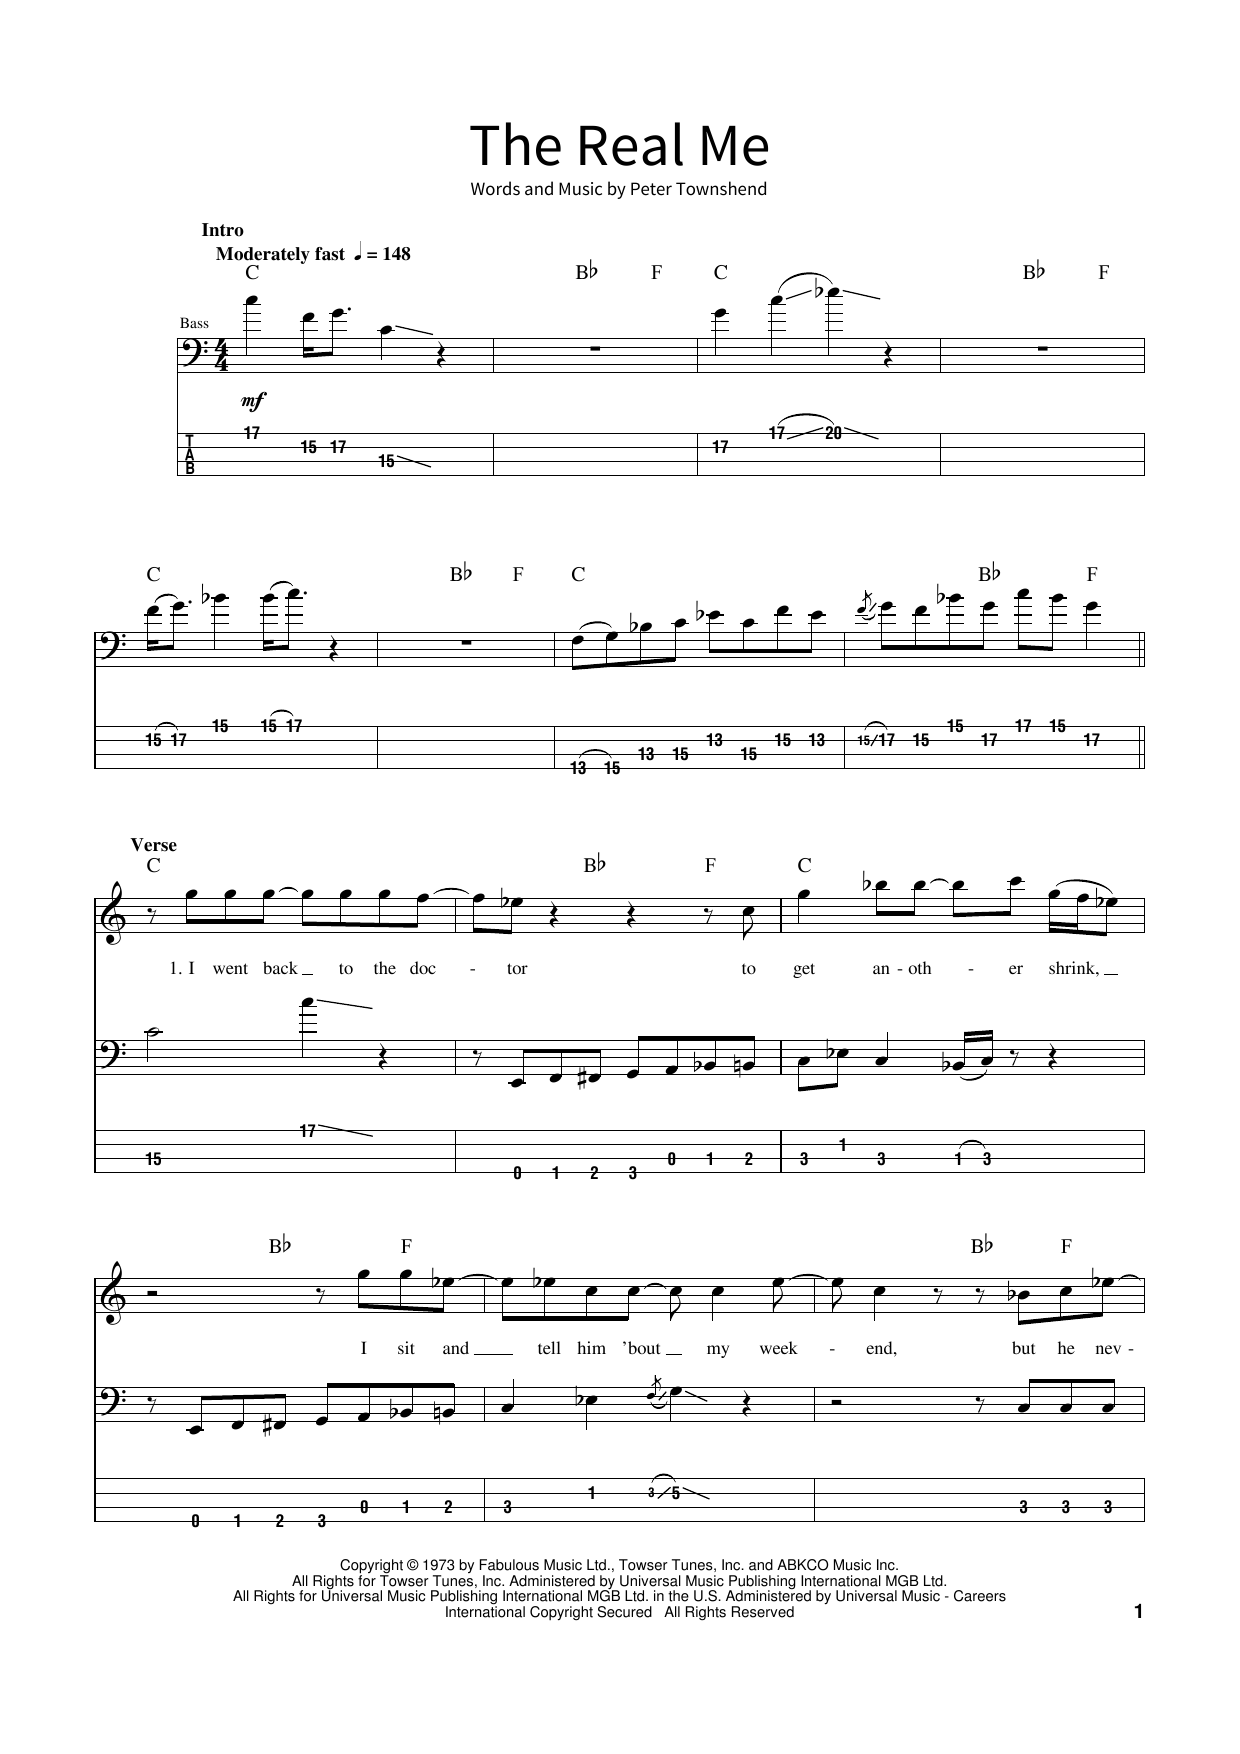 The Real Me Sheet Music